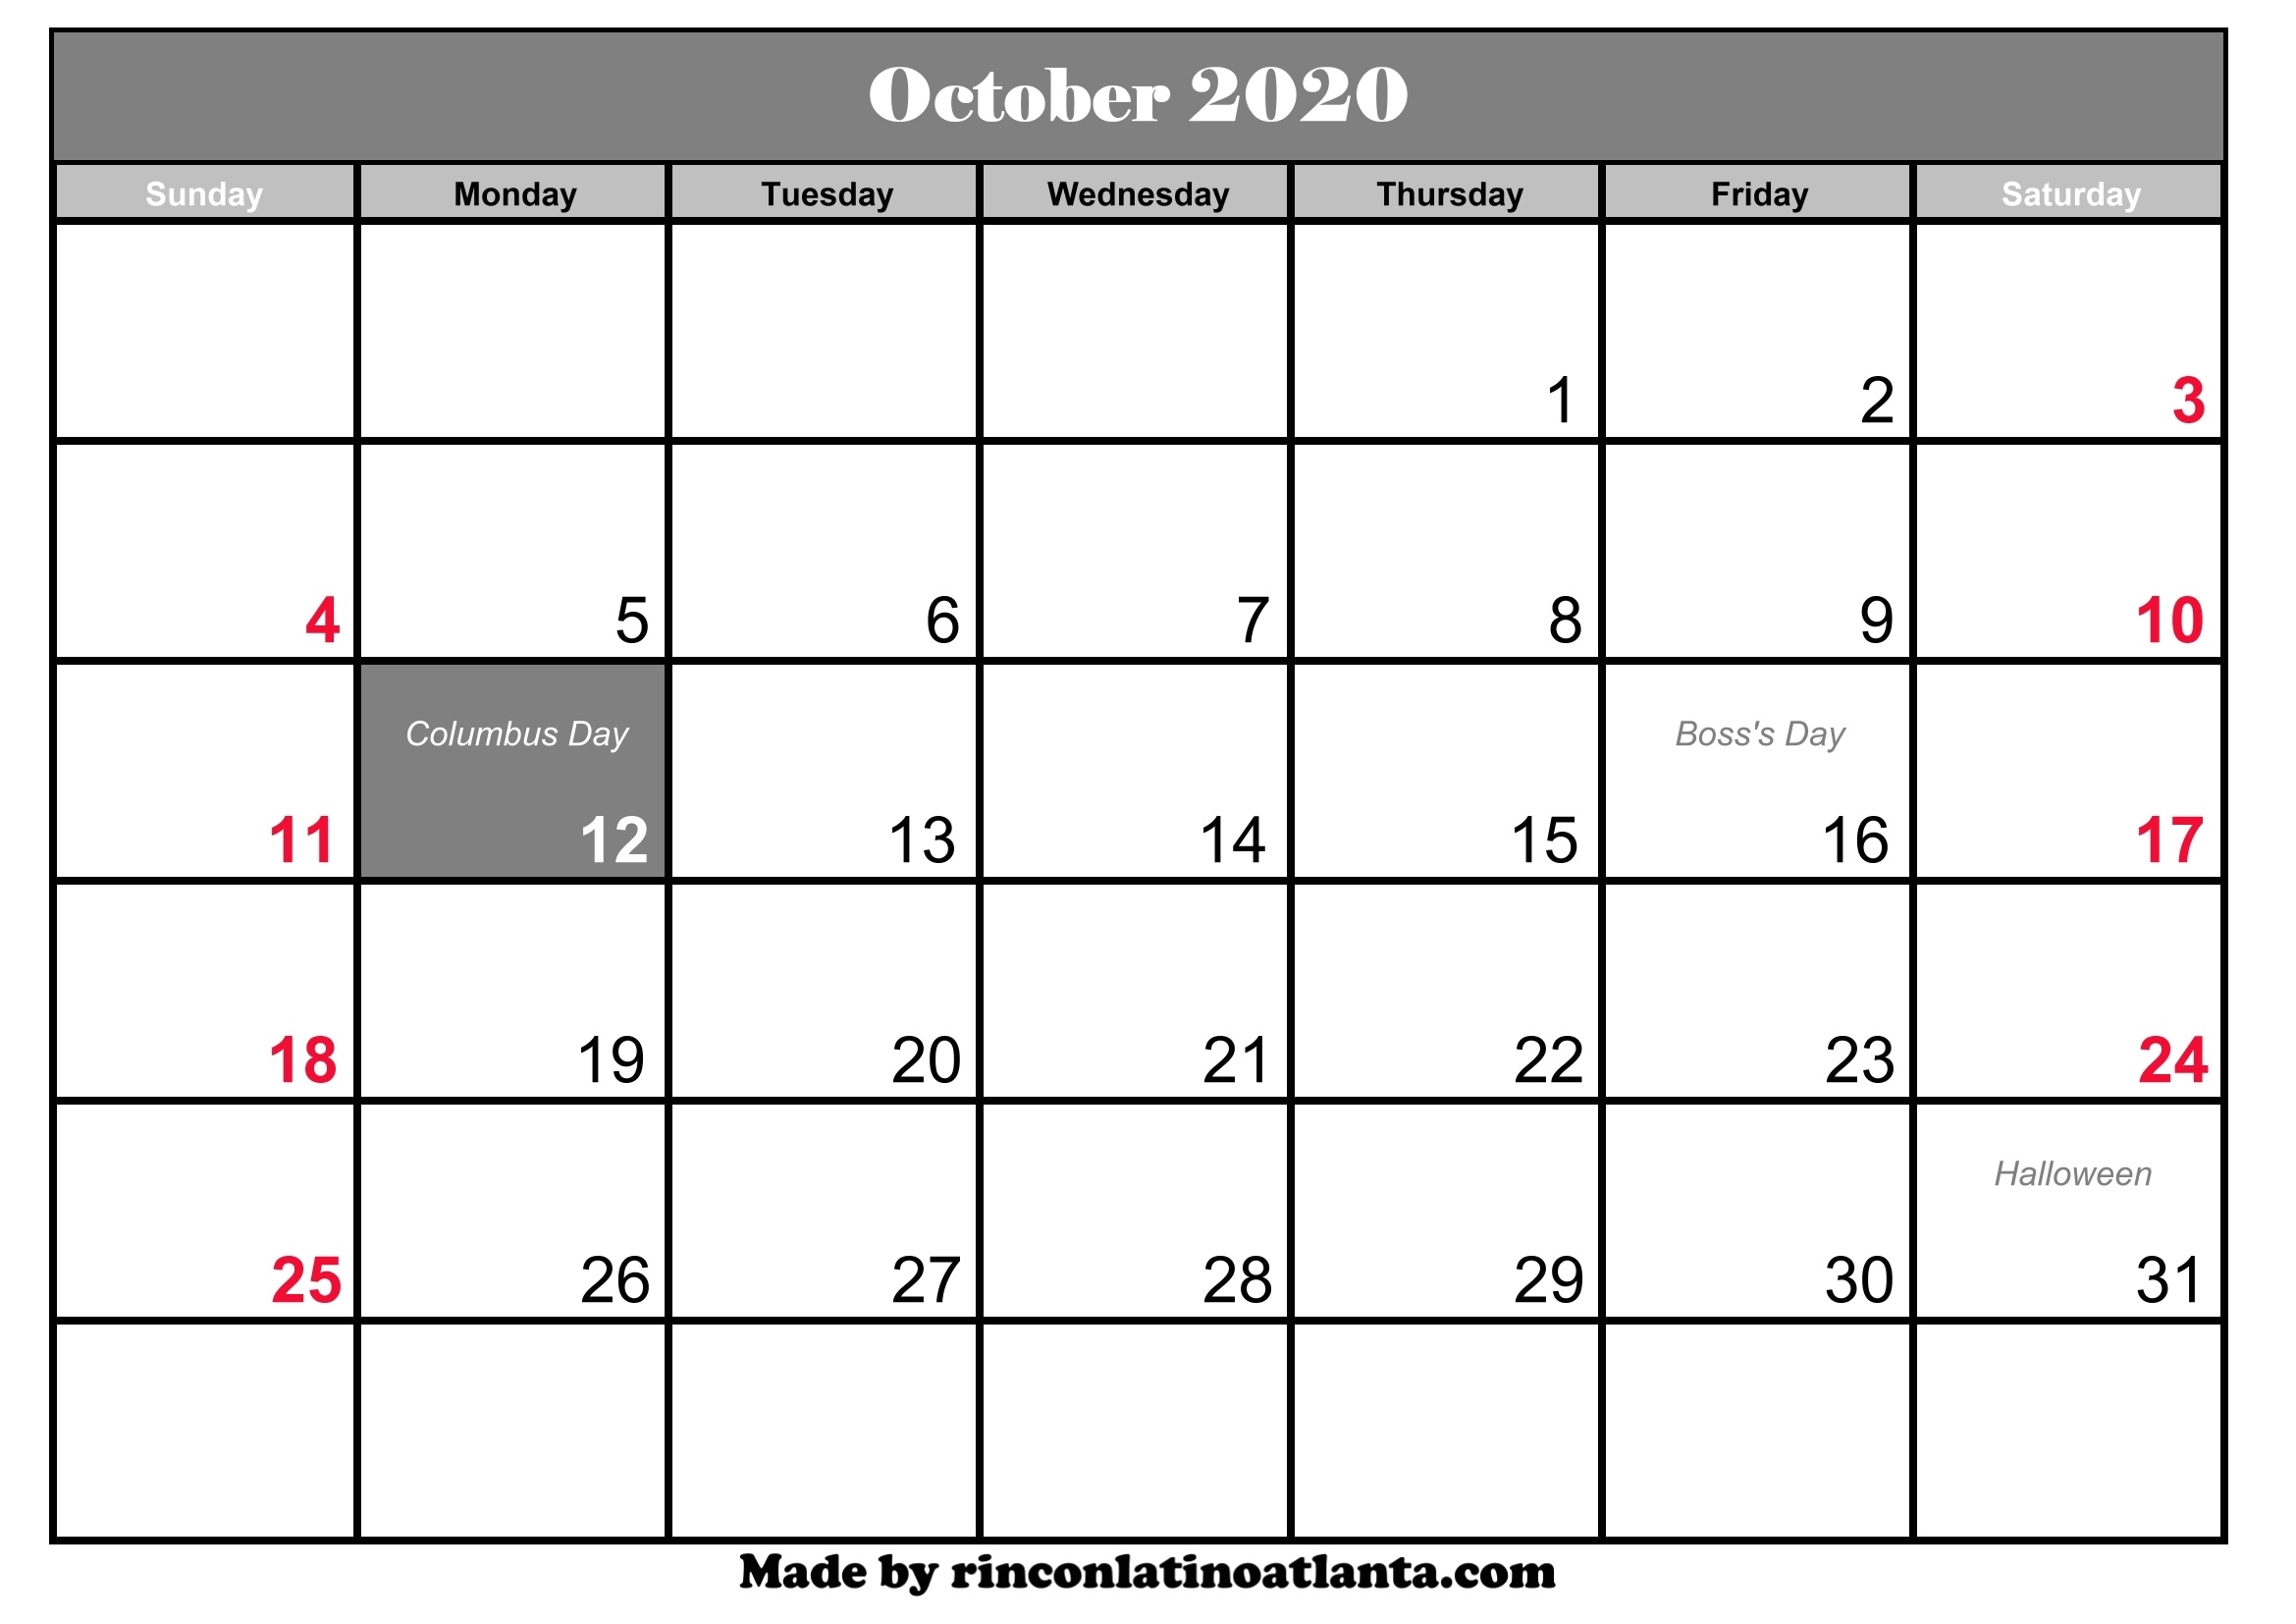 October 2020 Calendar Printable With Holidays | Calendar Template inside Free Printable 2020 Calendar With Space To Write